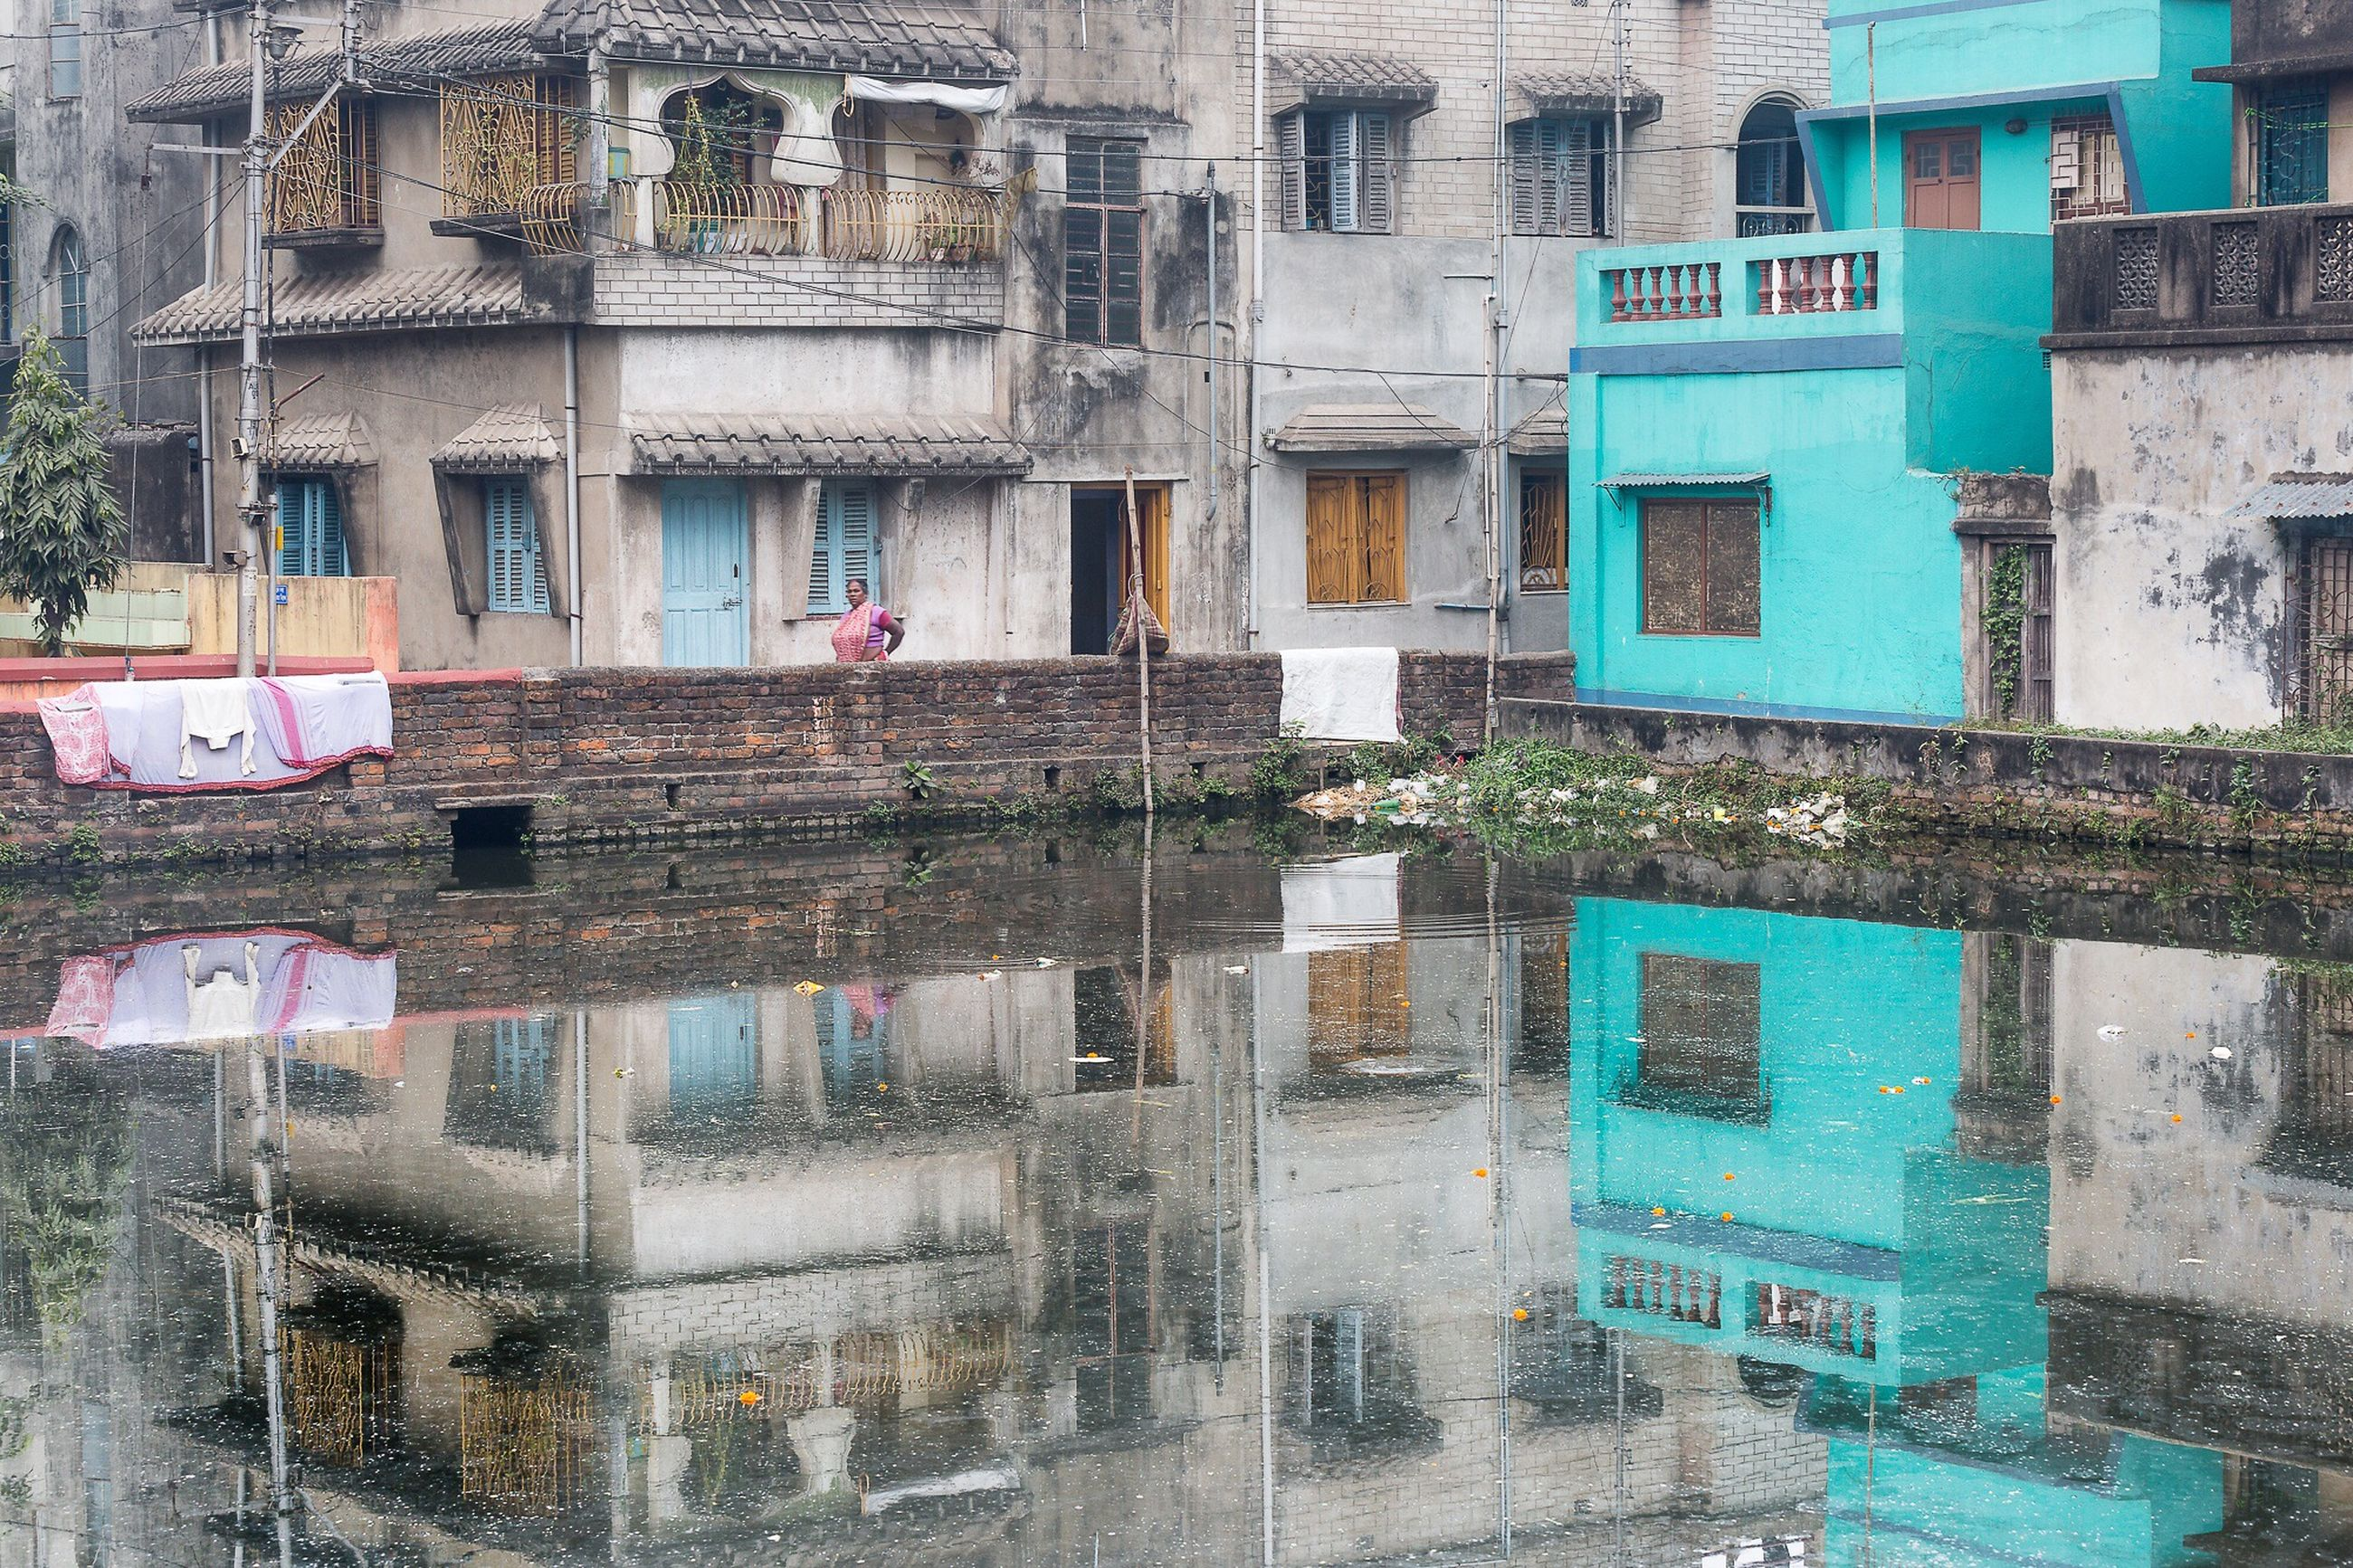 architecture, building exterior, built structure, building, residential building, water, residential structure, window, city, day, reflection, house, outdoors, no people, canal, transportation, old, damaged, multi colored, high angle view